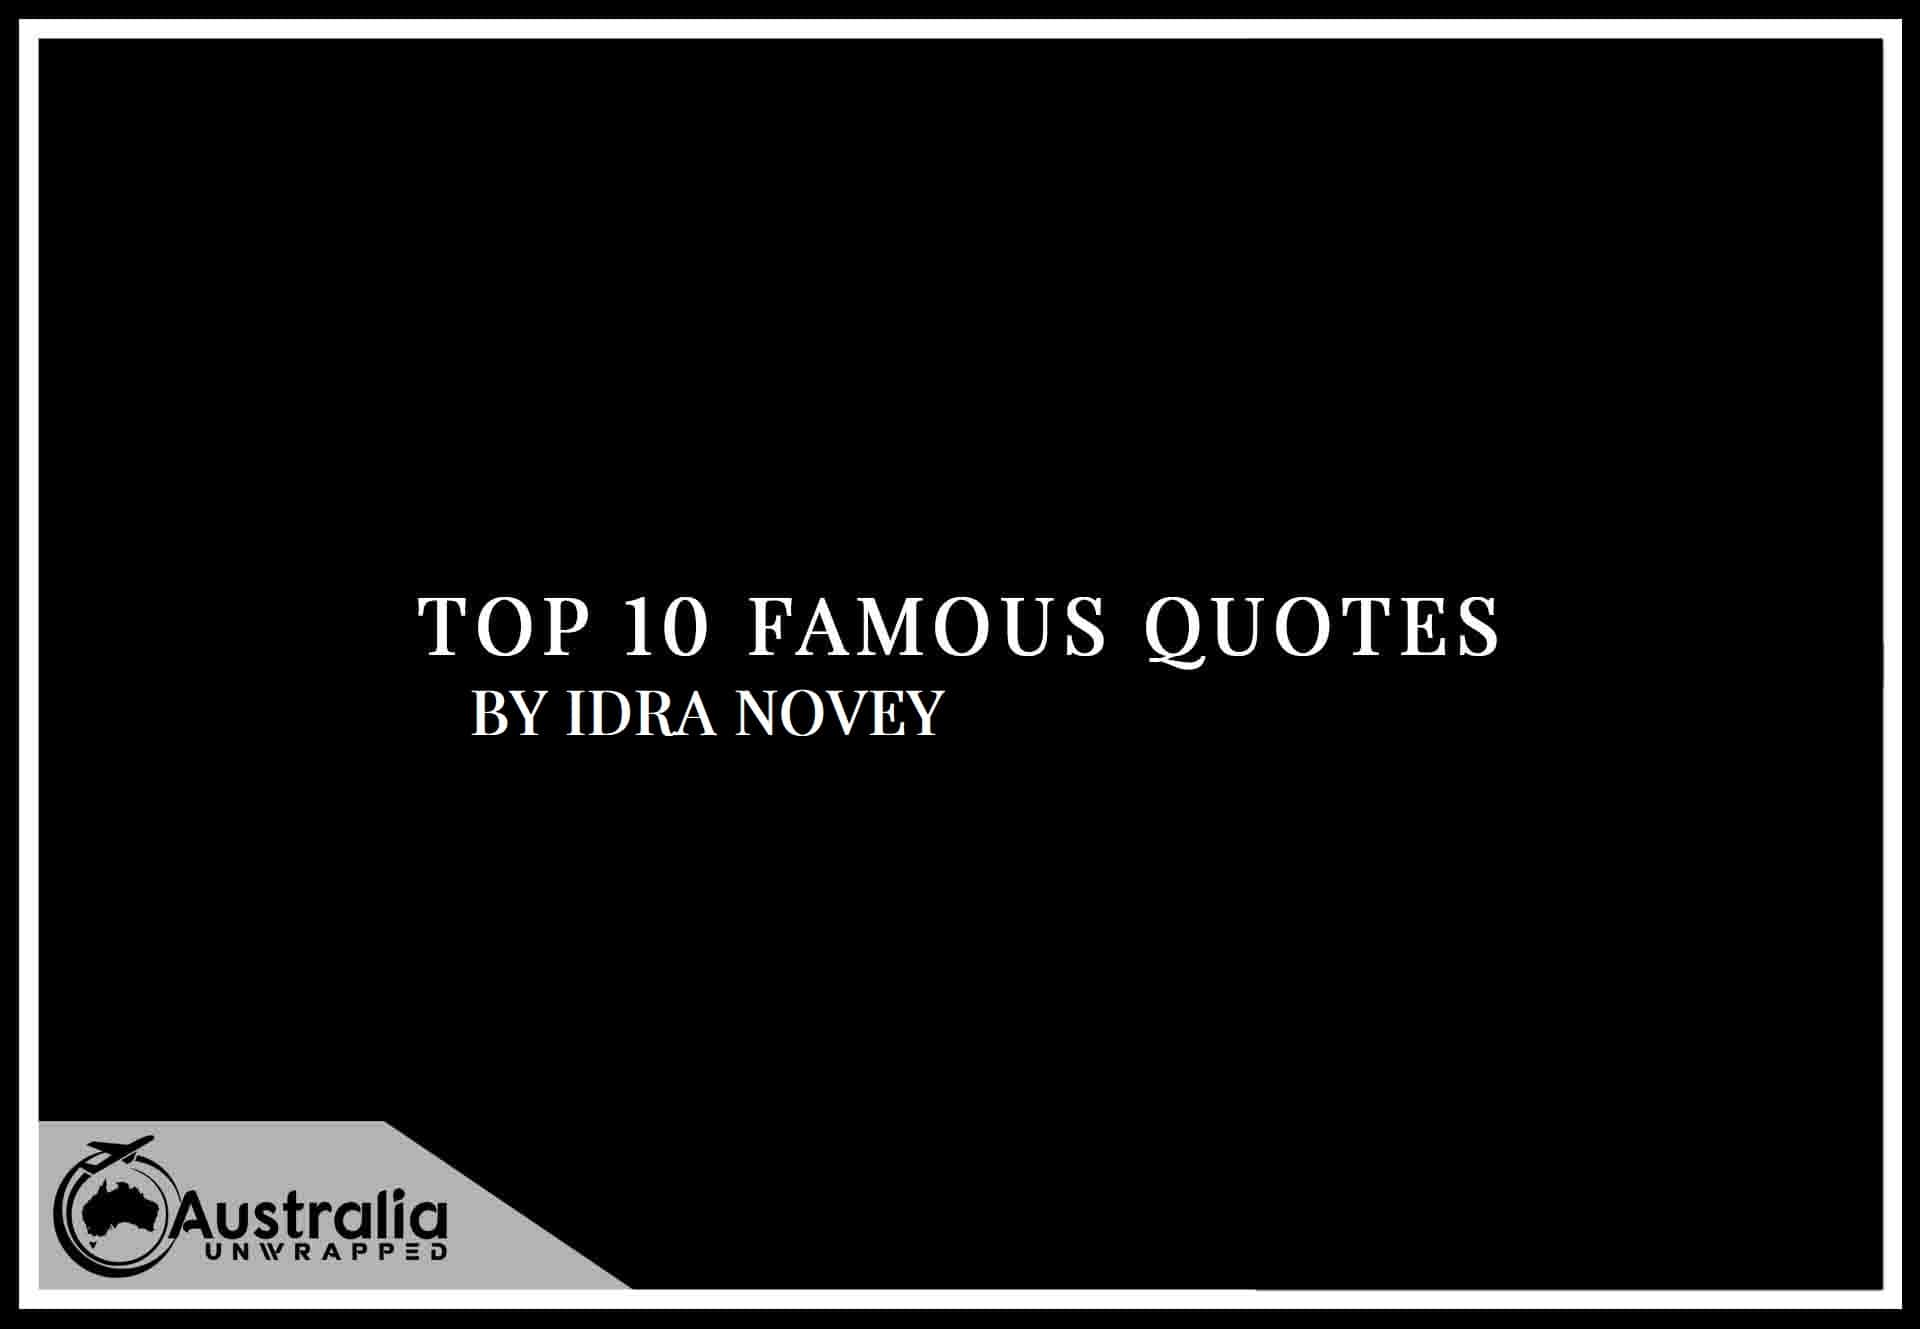 Top 10 Famous Quotes by Author Idra Novey